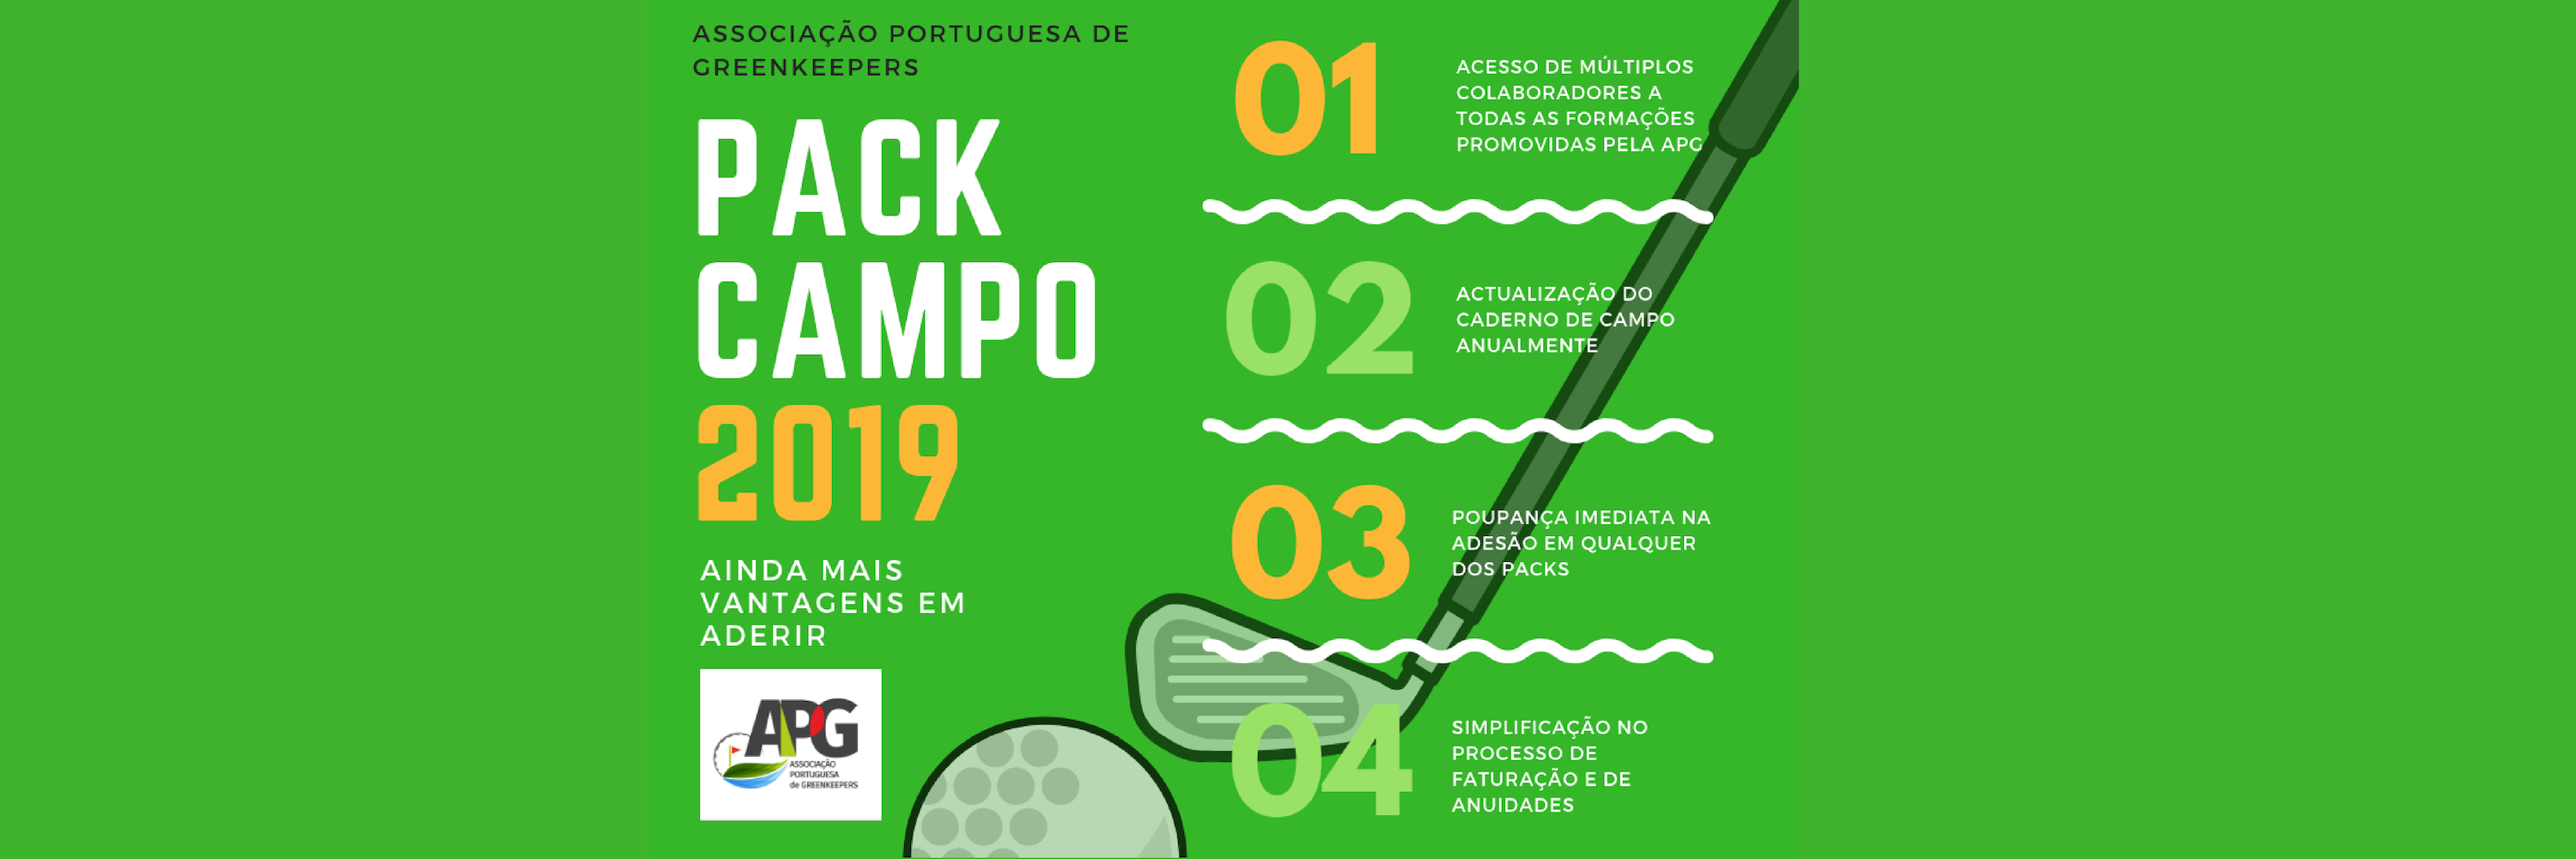 Pack Campo 2019